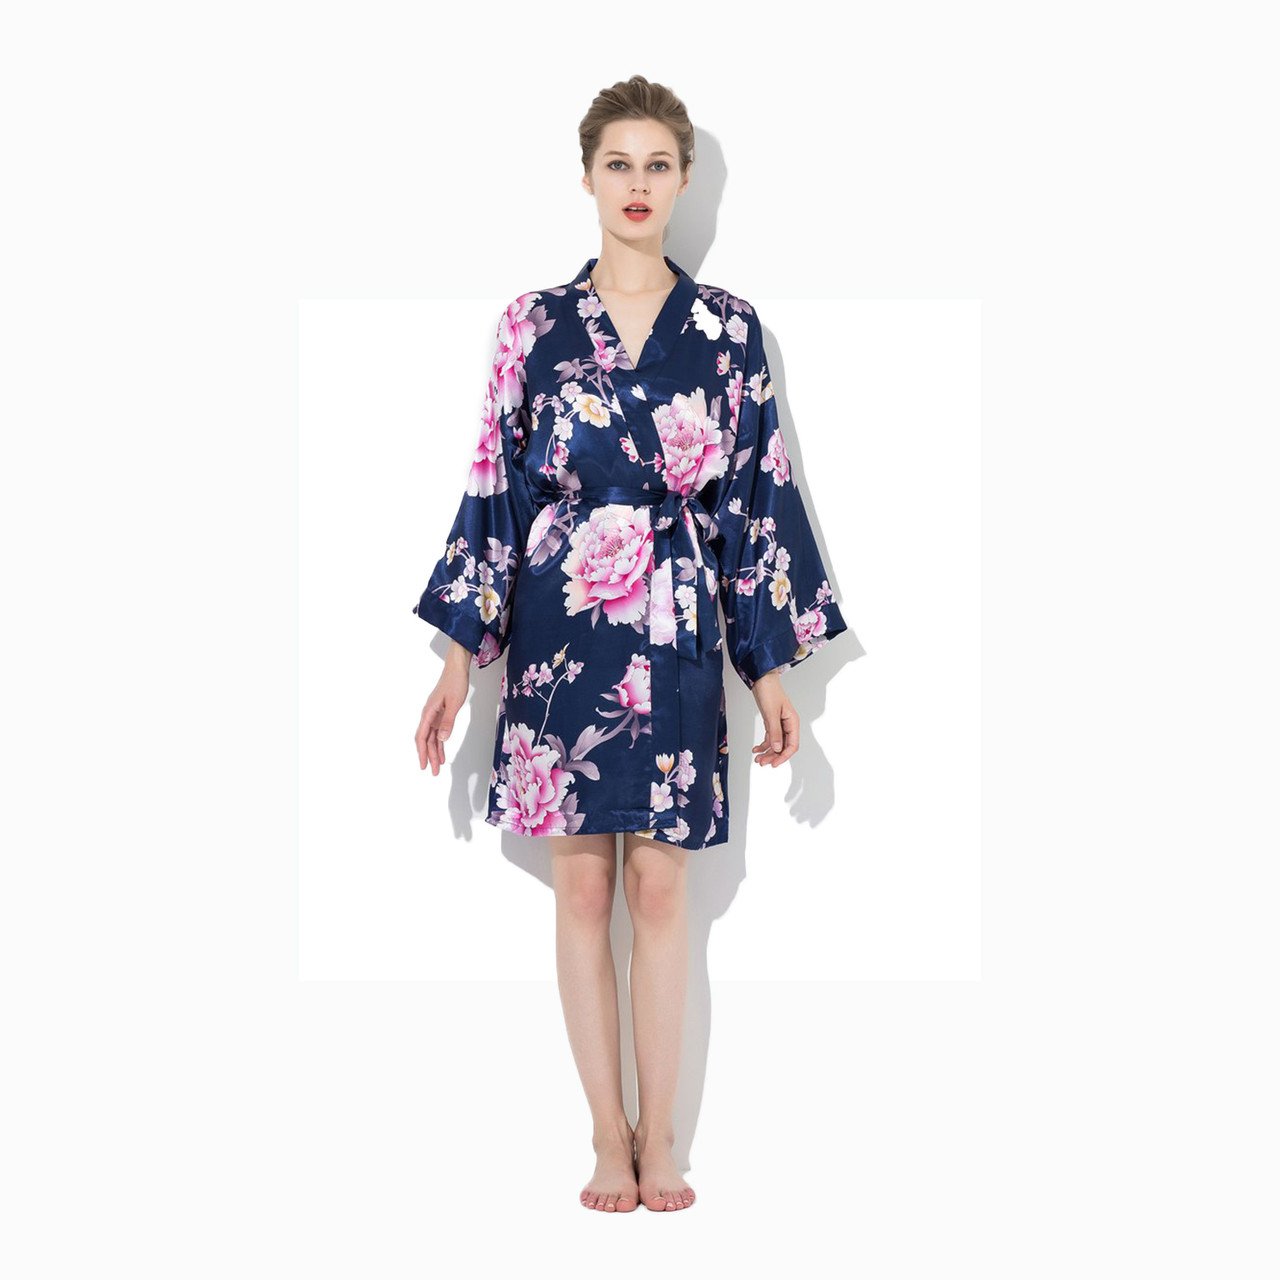 Kimono Silk Bridesmaid Floral Robes Plus Size Navy Blue For Weddings Bridal Tablecloths